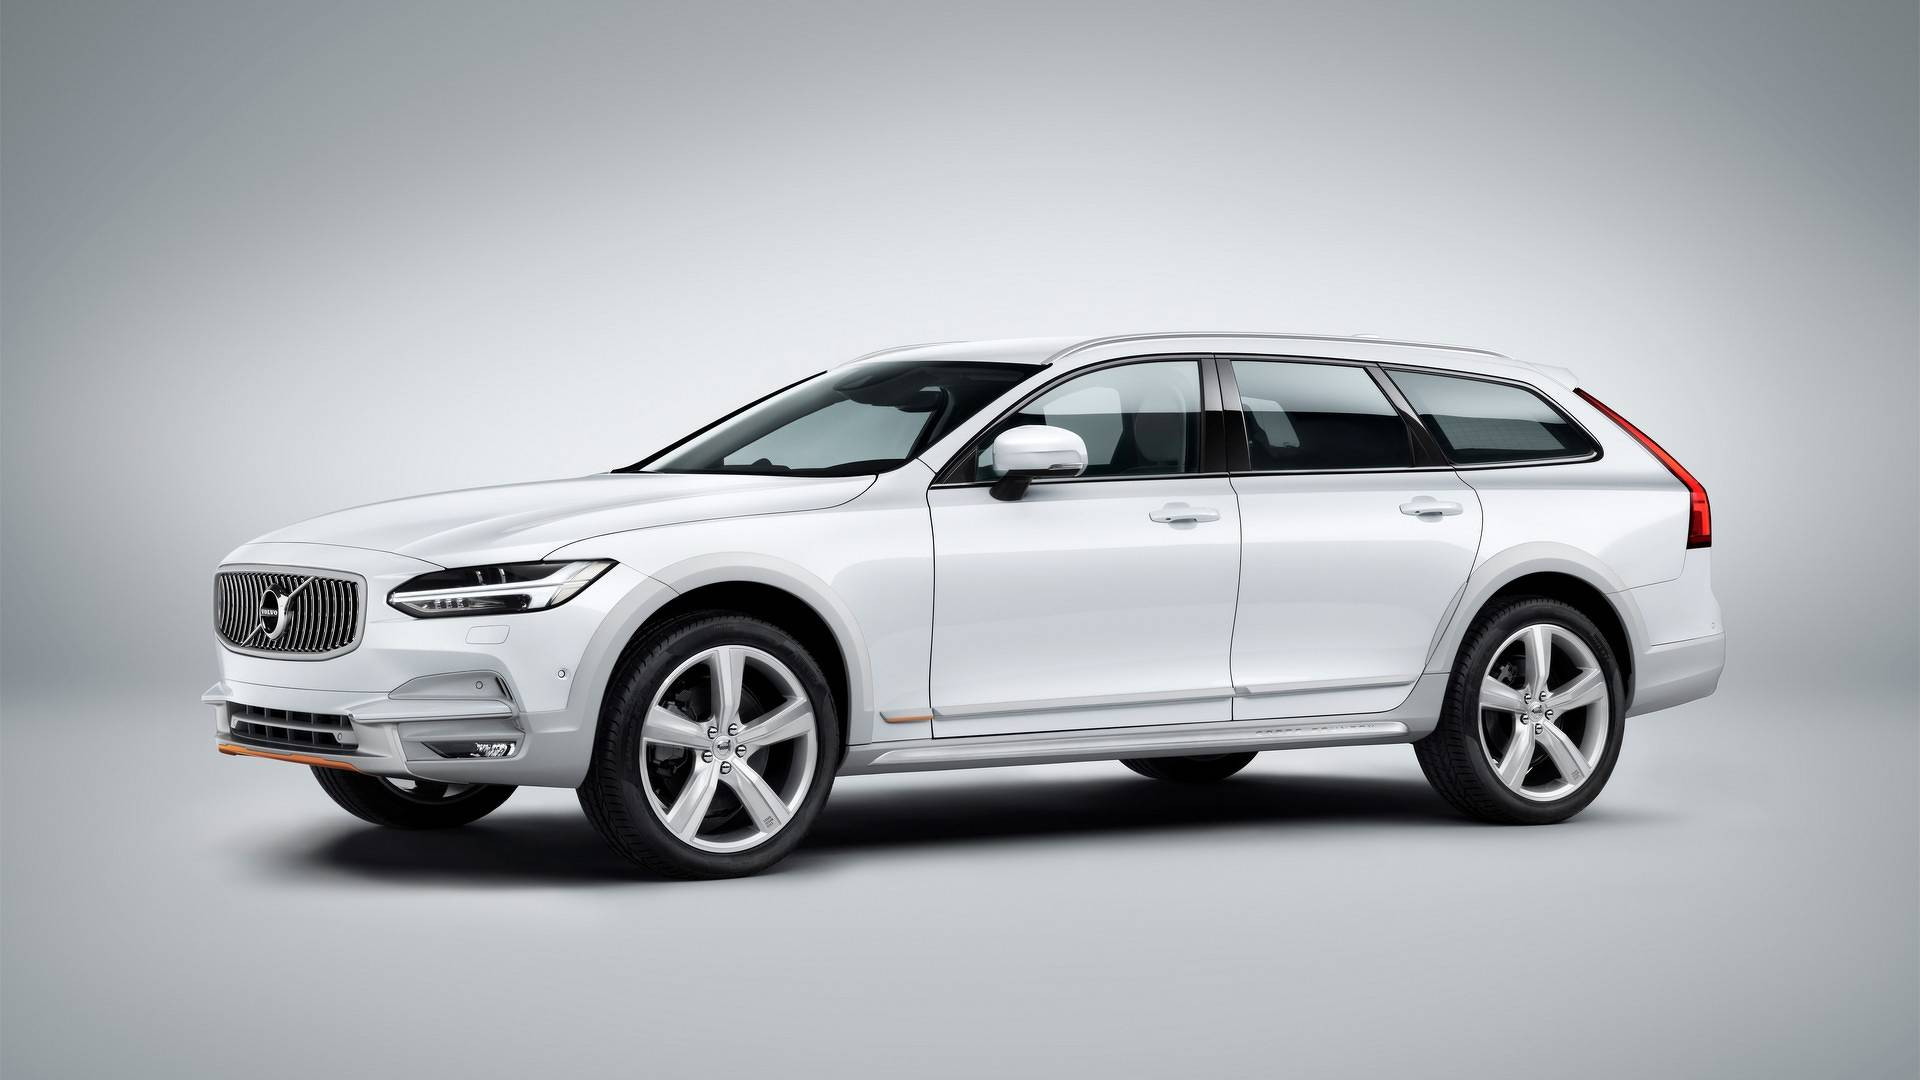 volvo v90 cross country volvo ocean race has carpets made from ocean trash autoevolution. Black Bedroom Furniture Sets. Home Design Ideas